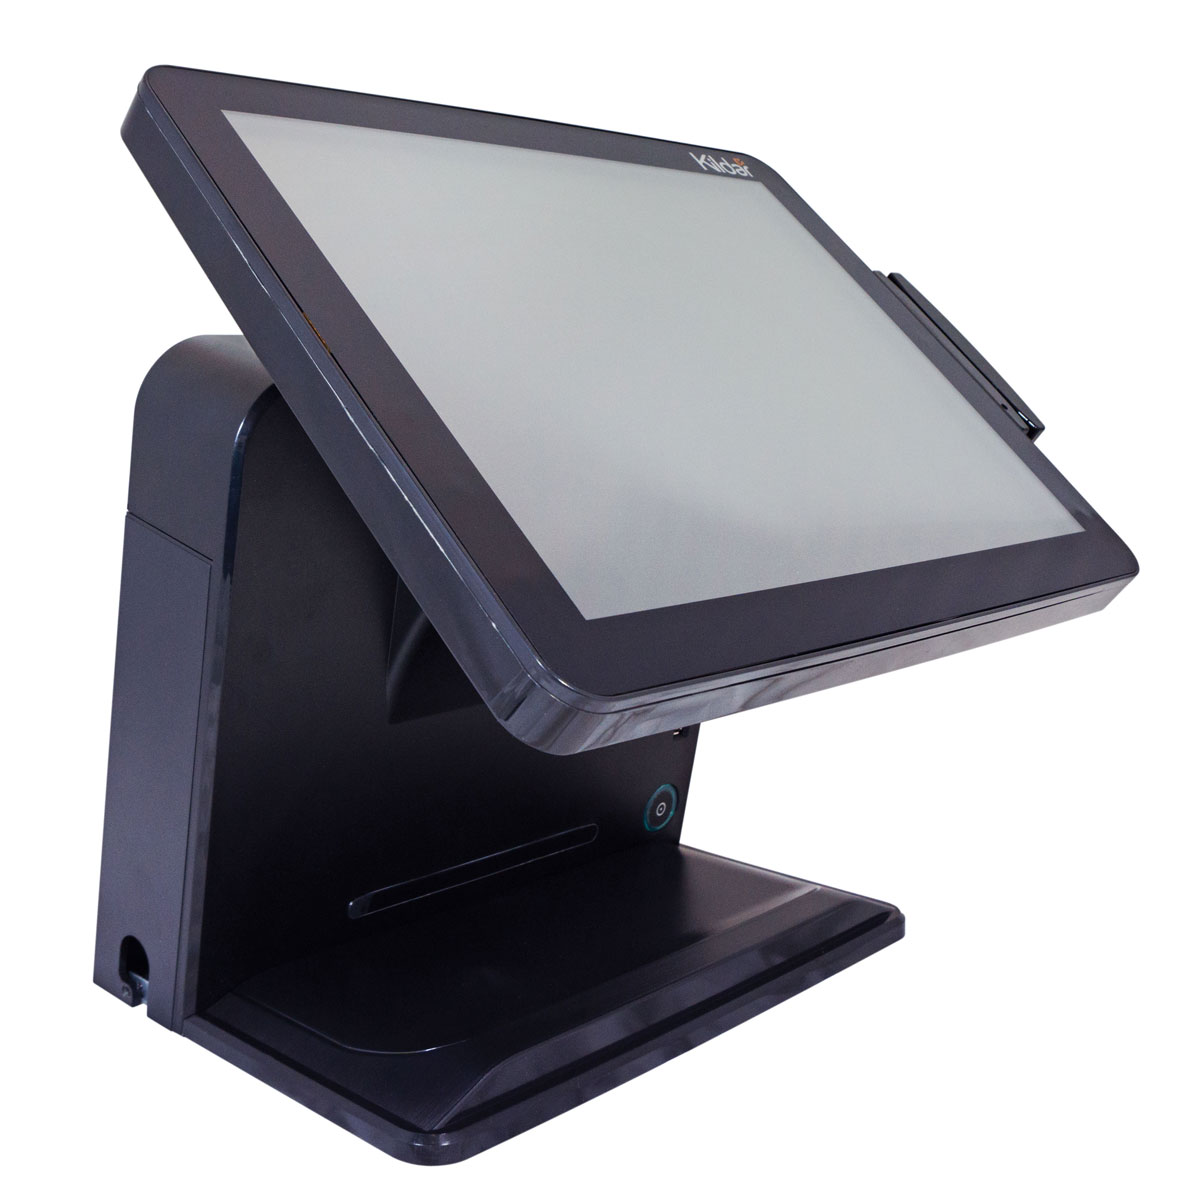 KILDAR - POS Touch Screen Terminals - DataTouch T1573 - Right Side 2